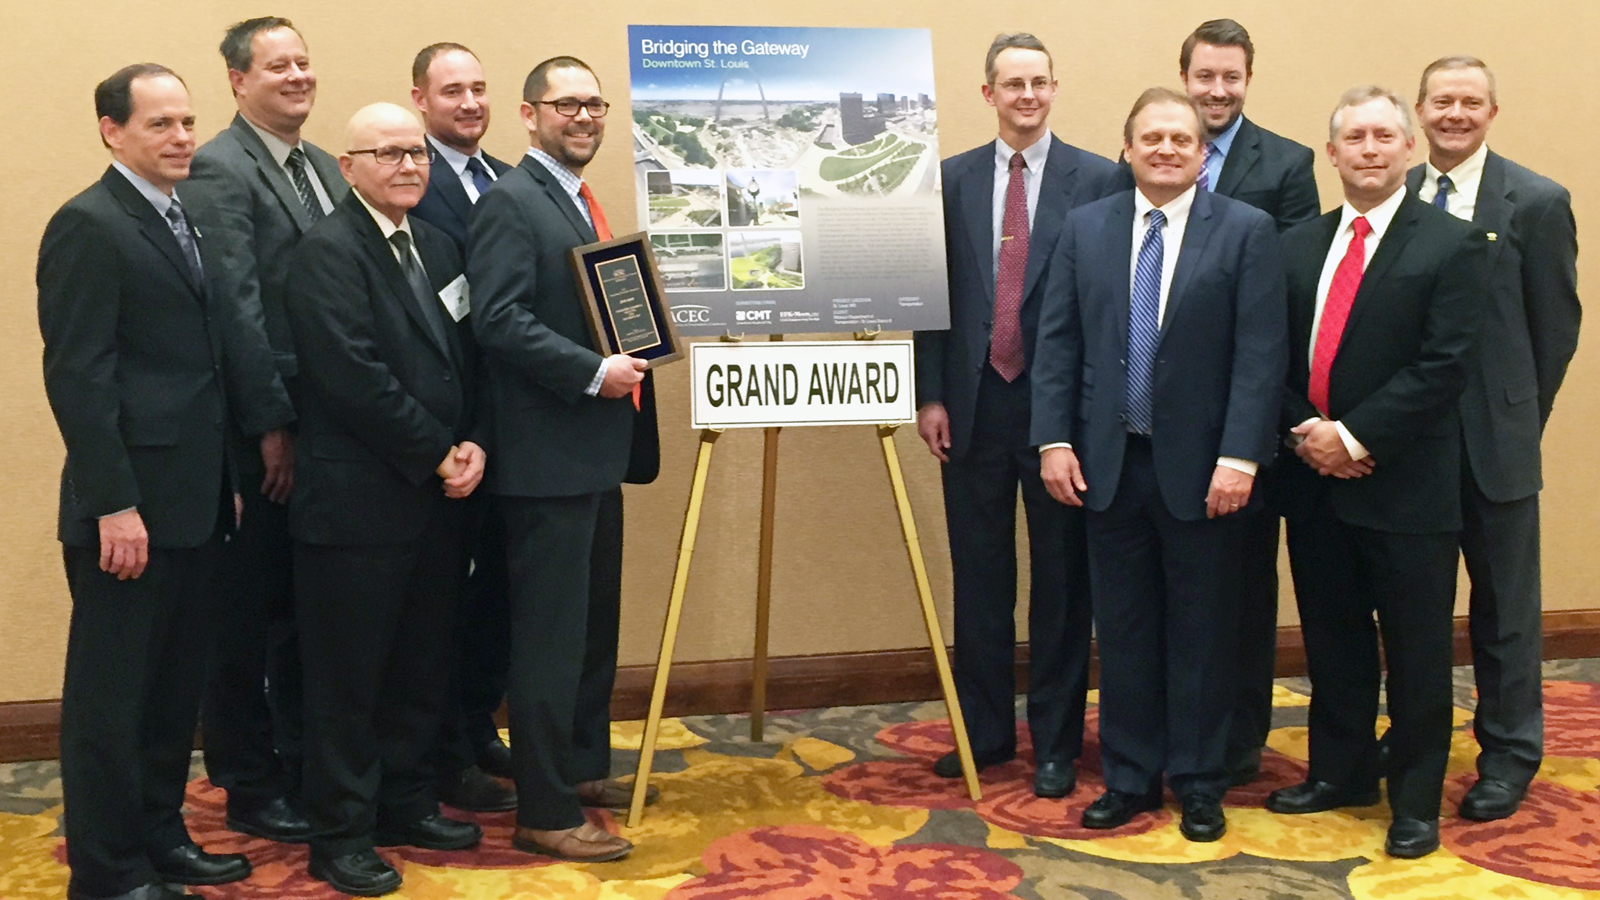 ACEC-MO Grand Award for Bridging the Gateway Project 2017